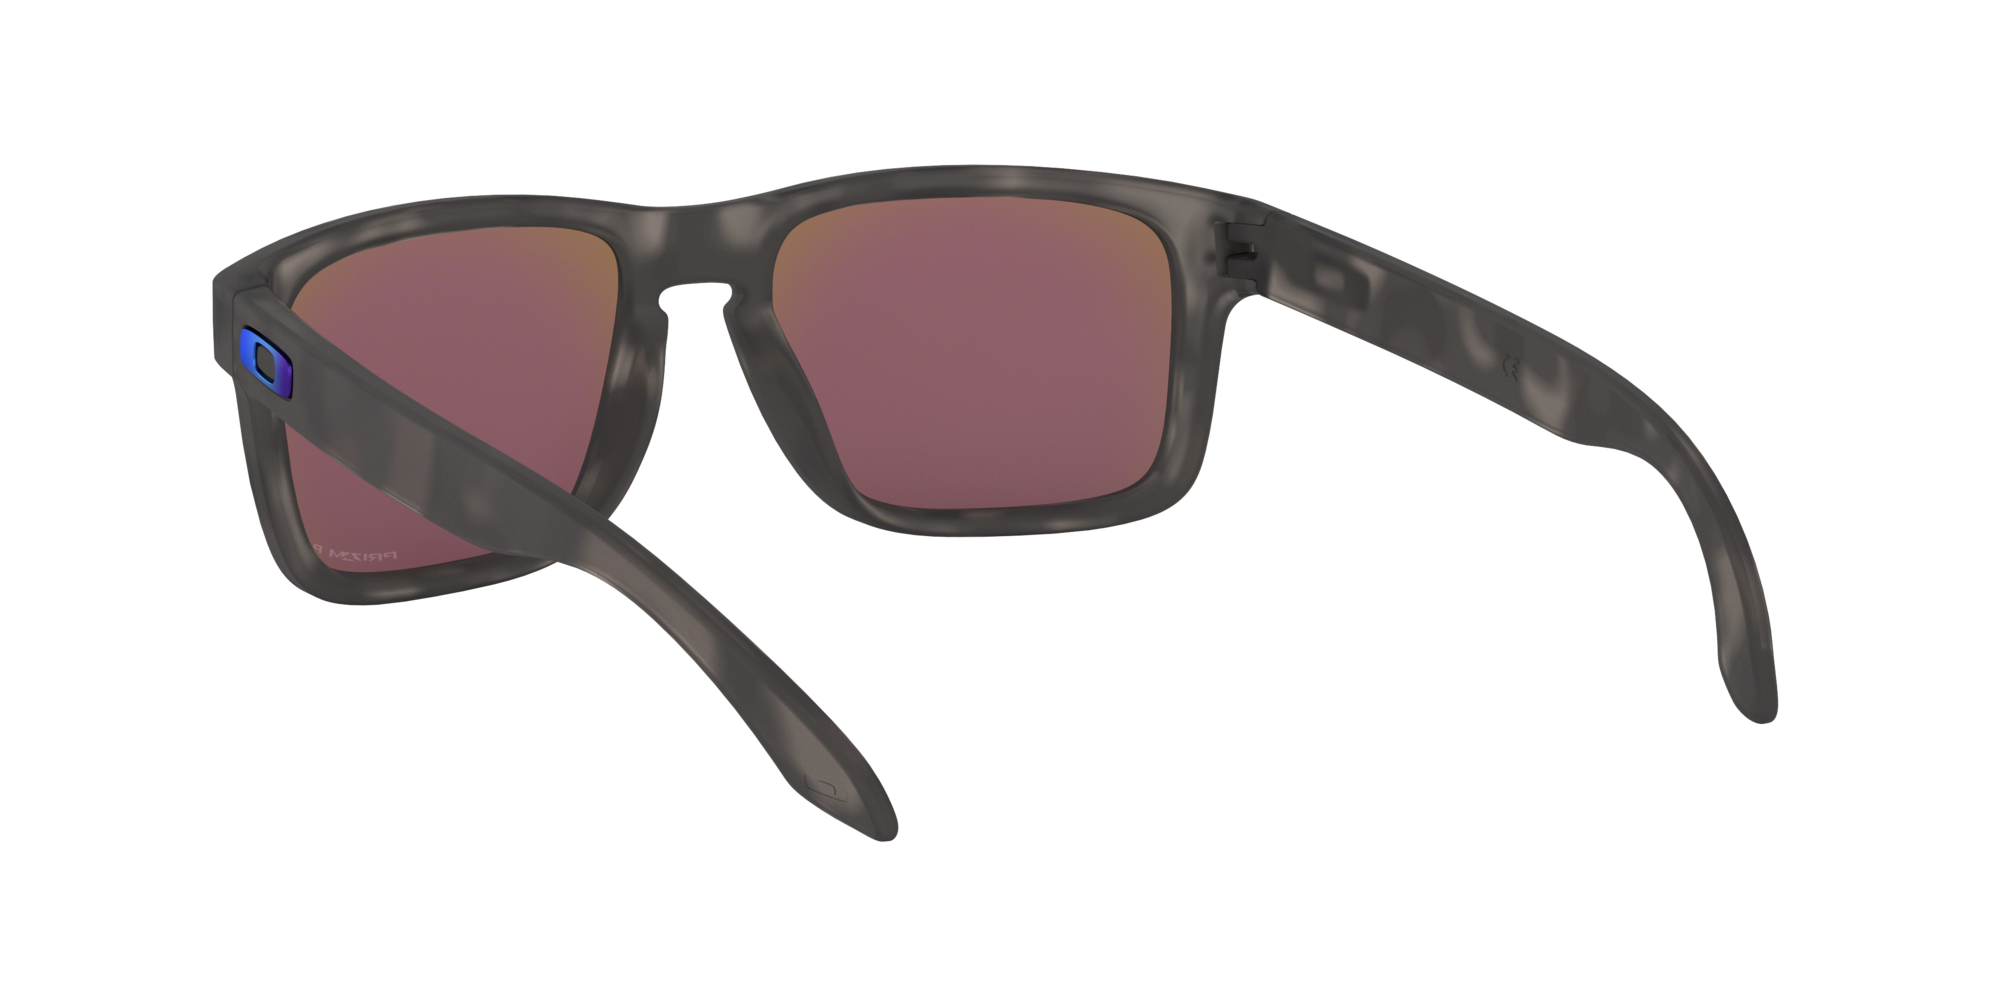 da50837144 Sunglasses Oakley Holbrook Fire and ice collection Grey Matte Prizm OO9102  G7 57-18 Medium Polarized Mirror